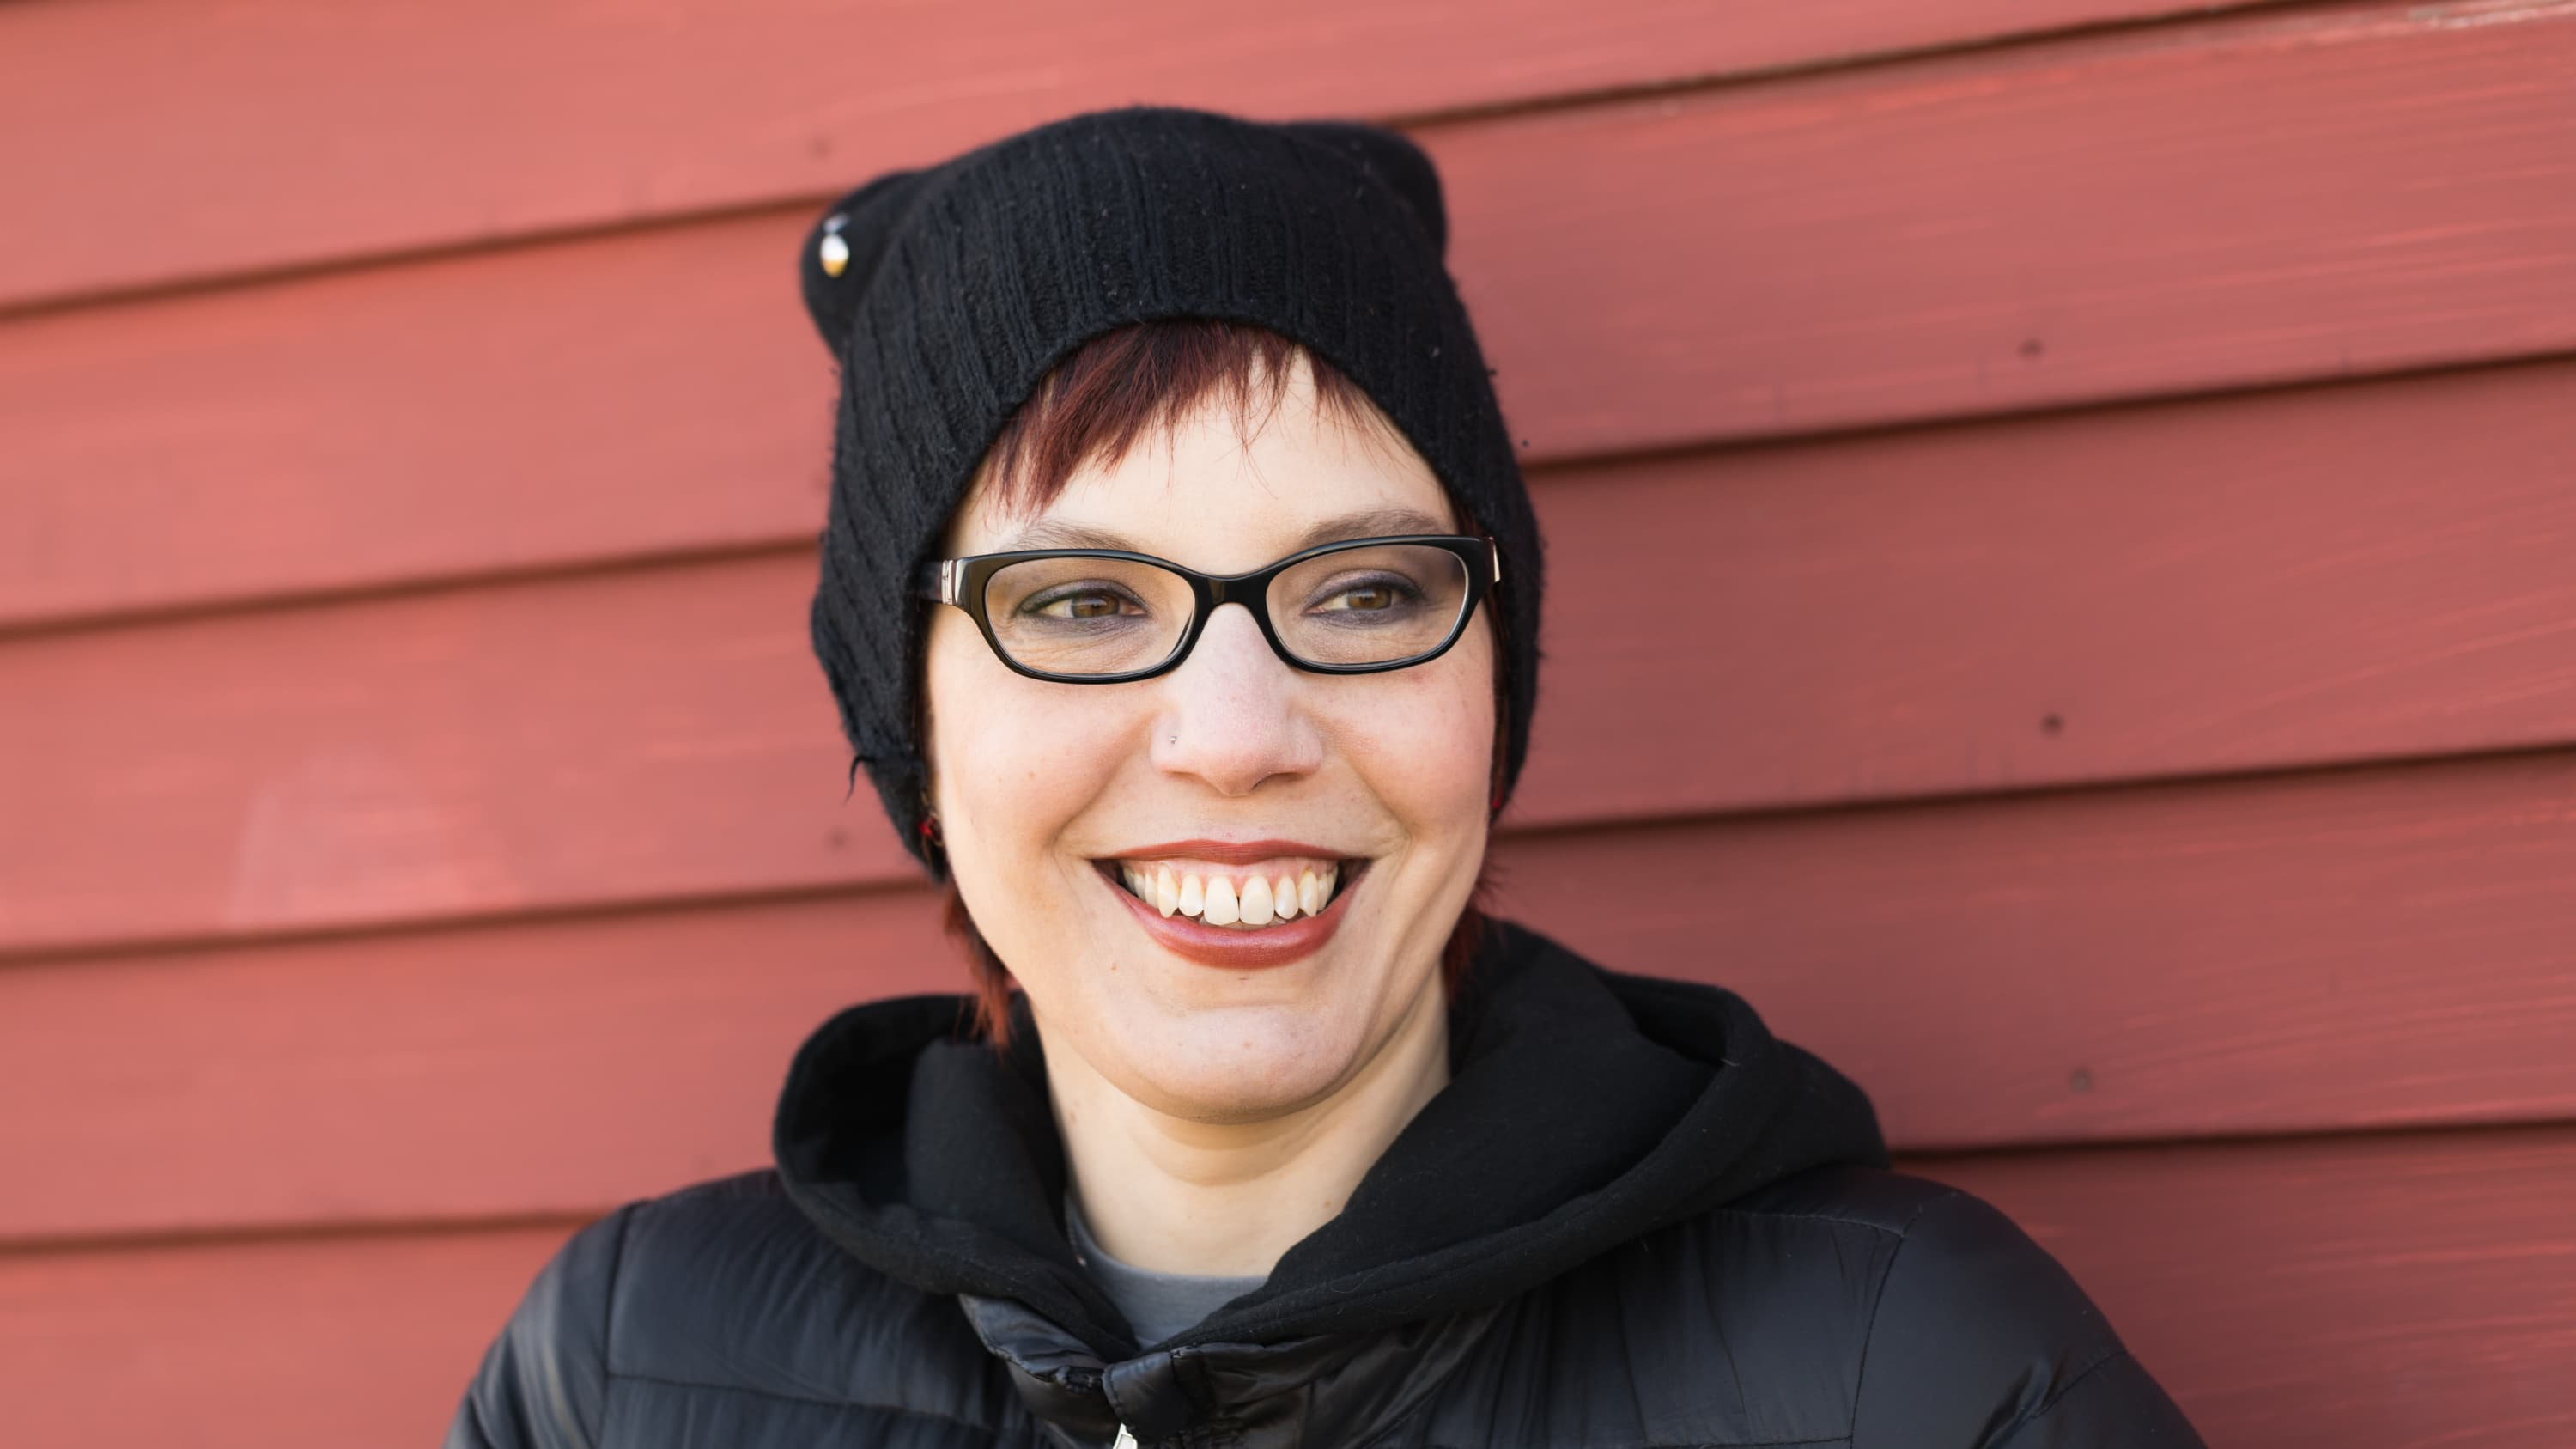 Erika Lewis, with glasses and knit hat, smiles into the camera.